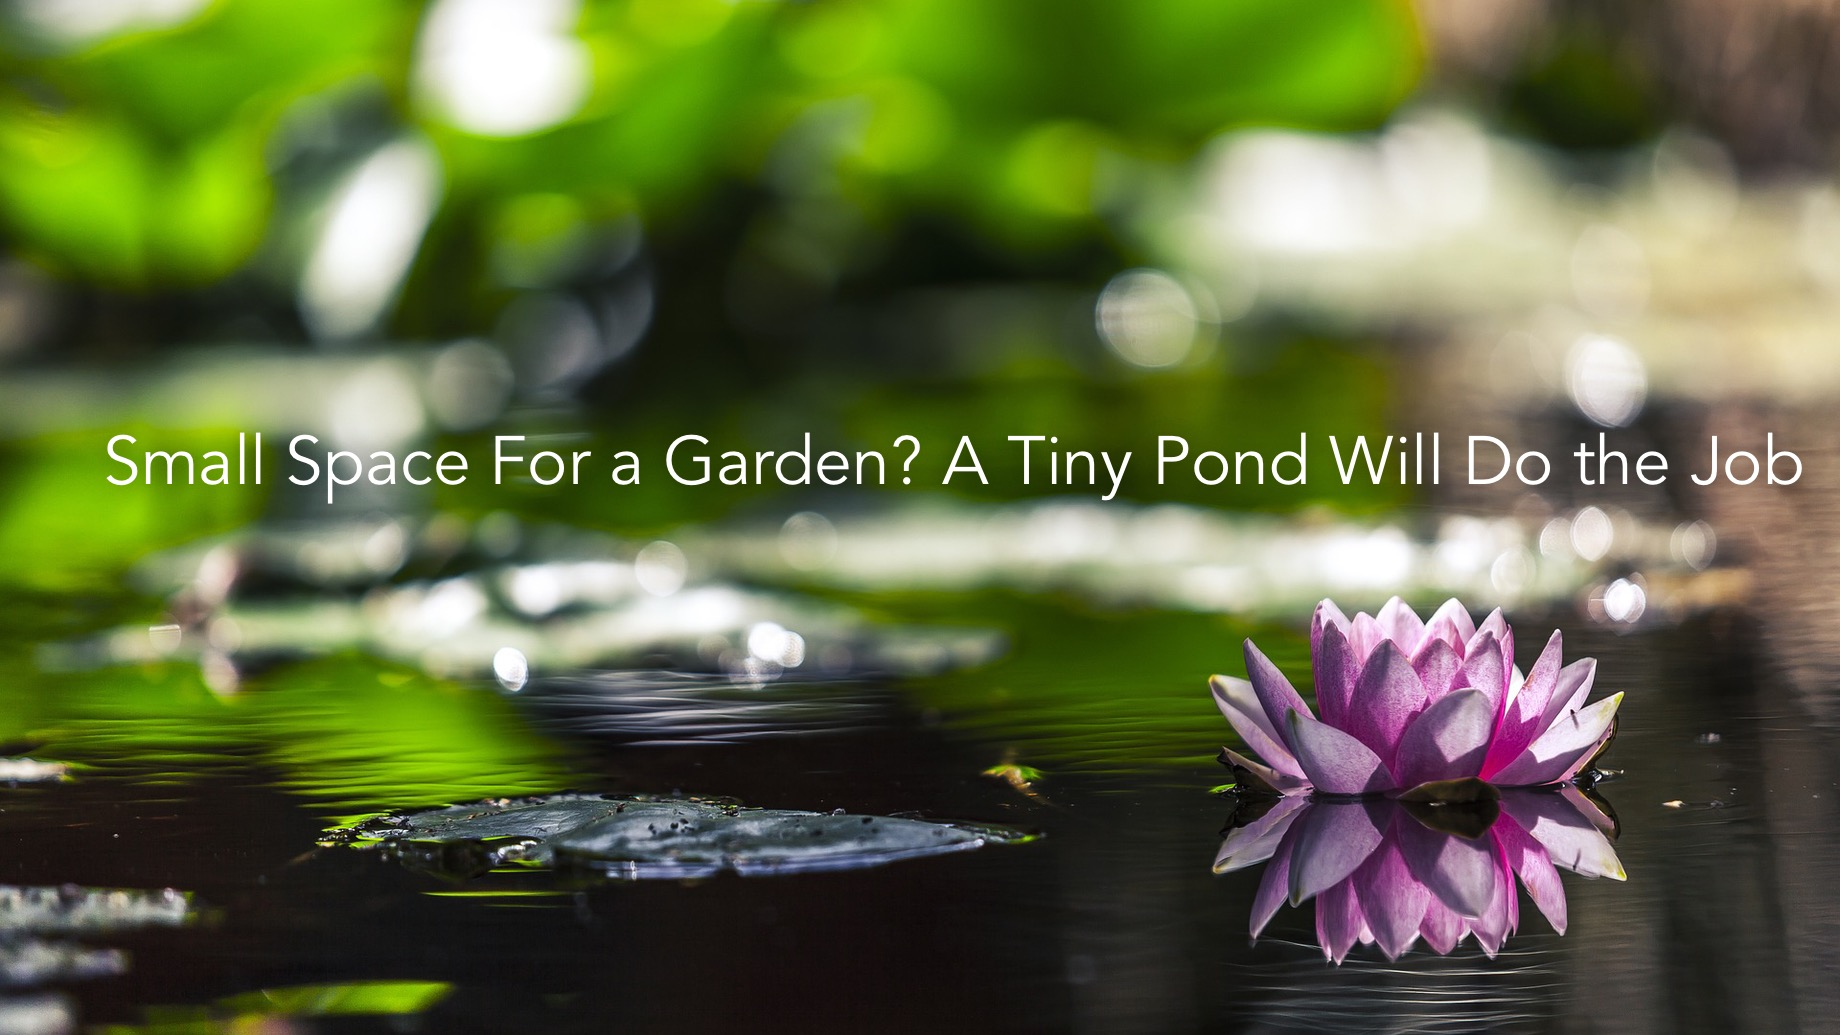 Small Space For a Garden? A Tiny Pond Will Do the Job